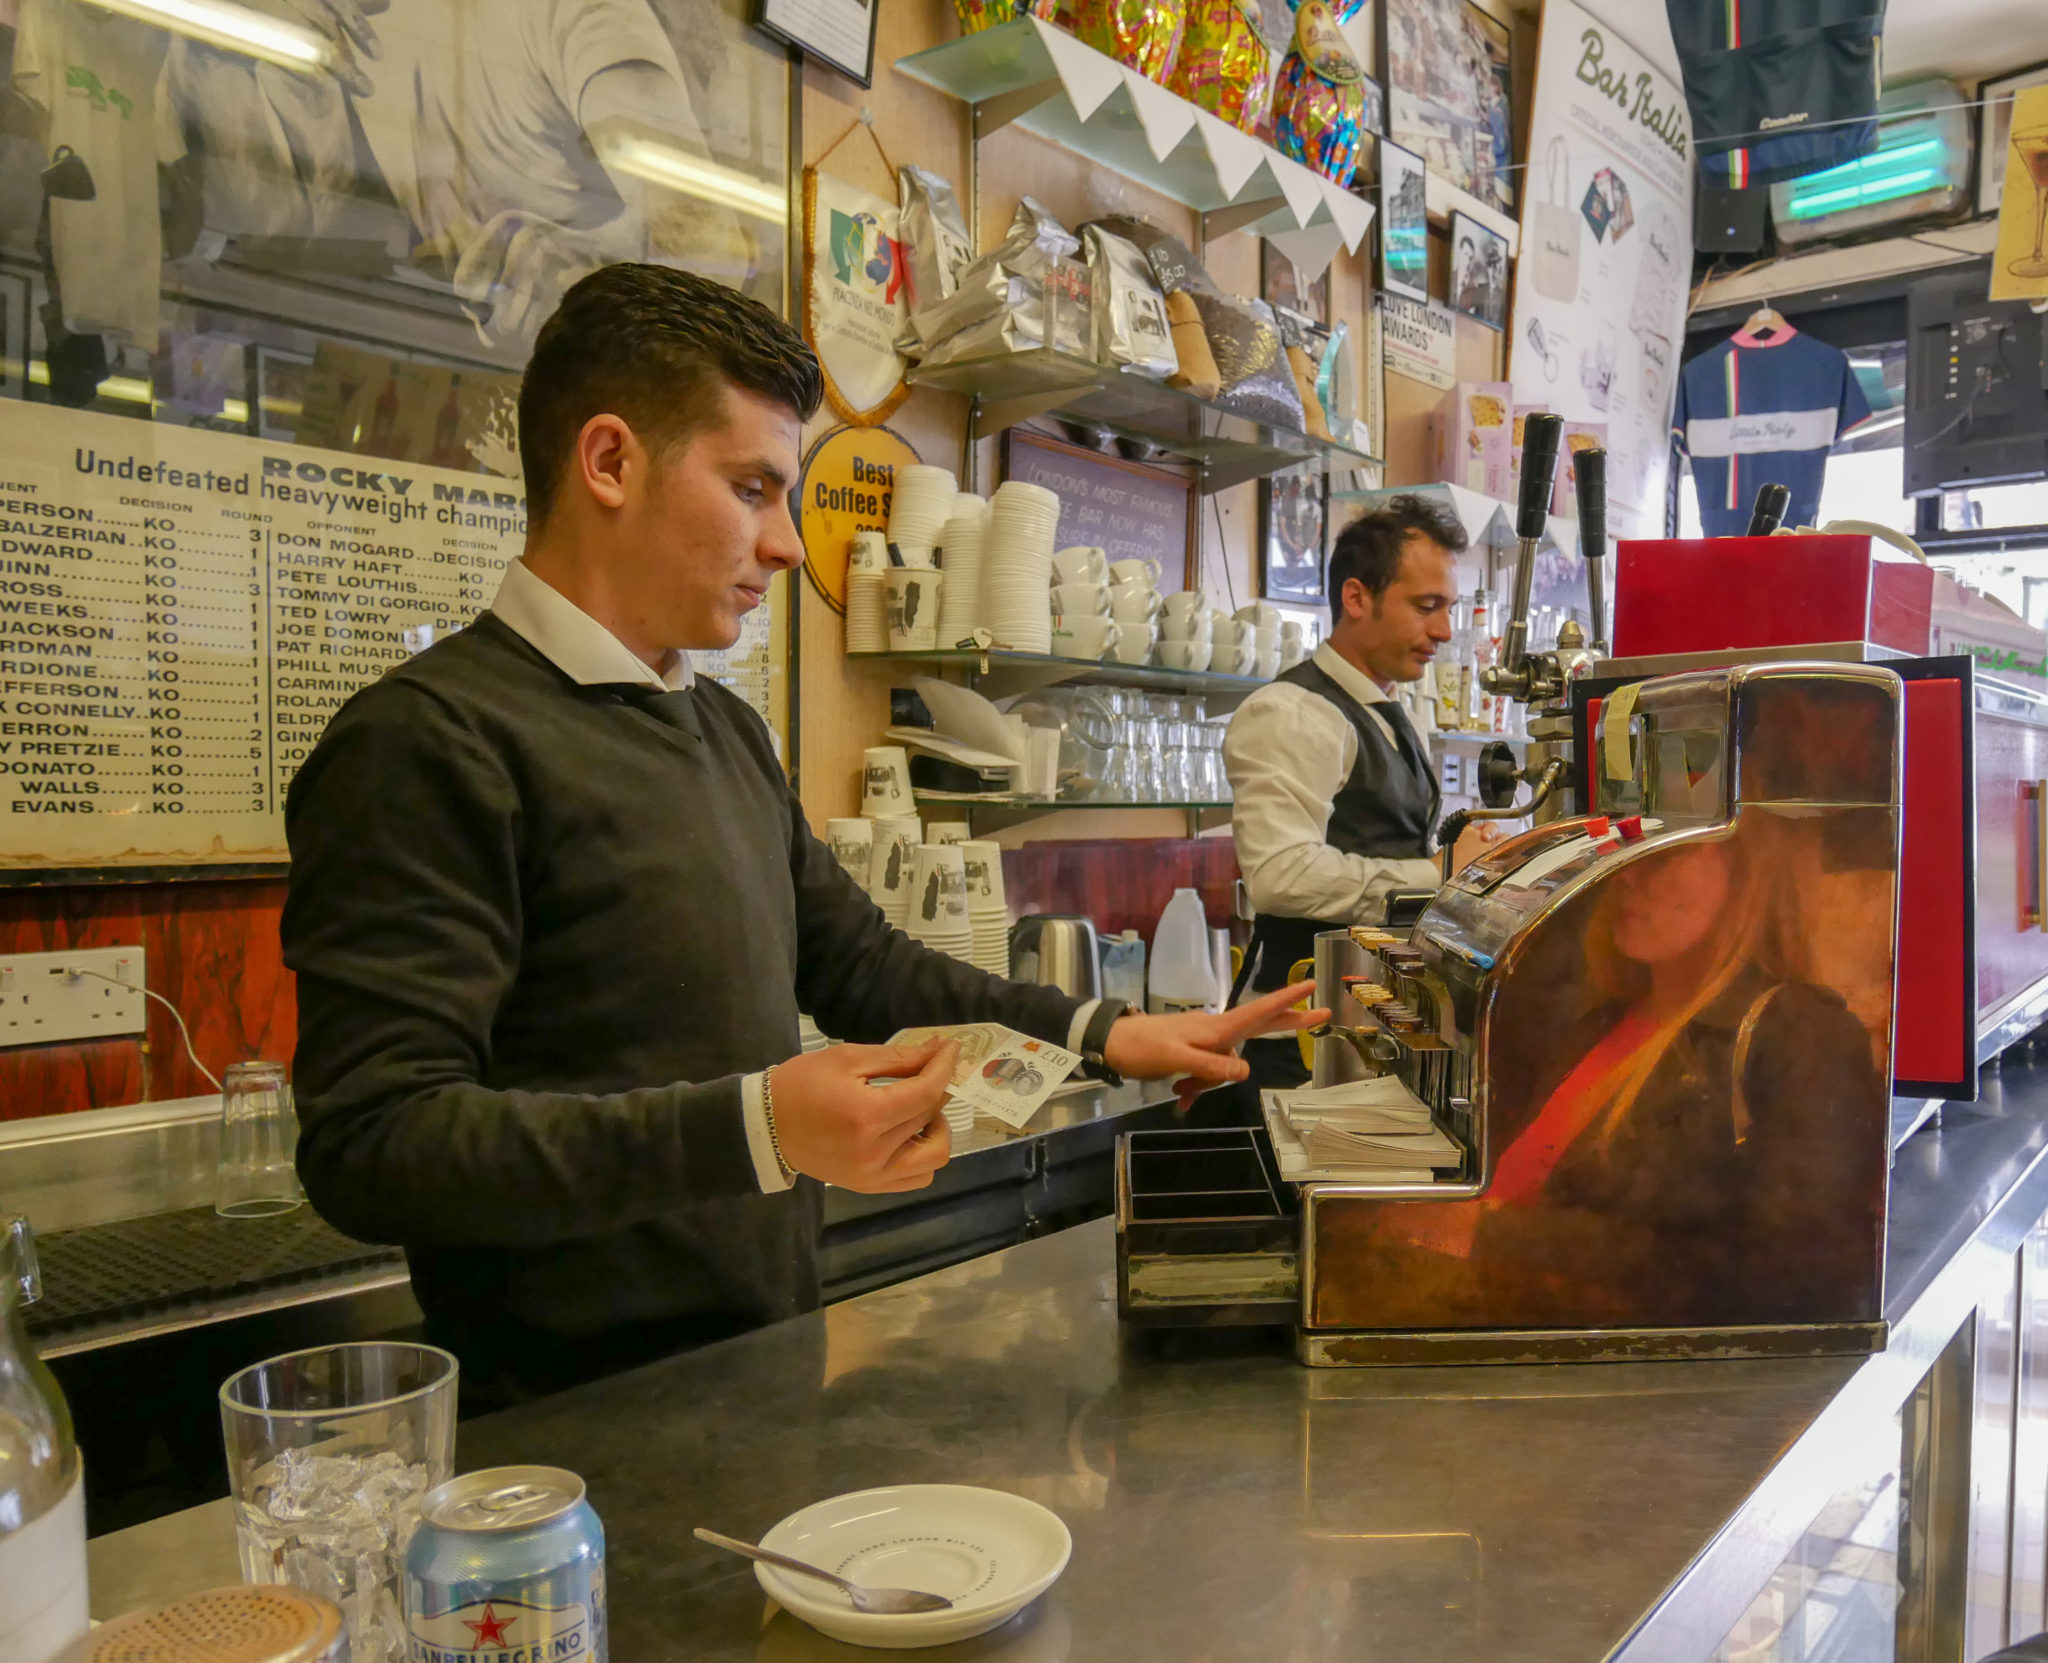 a server puts money into an old till on the counter at Bar Italia, Soho, London